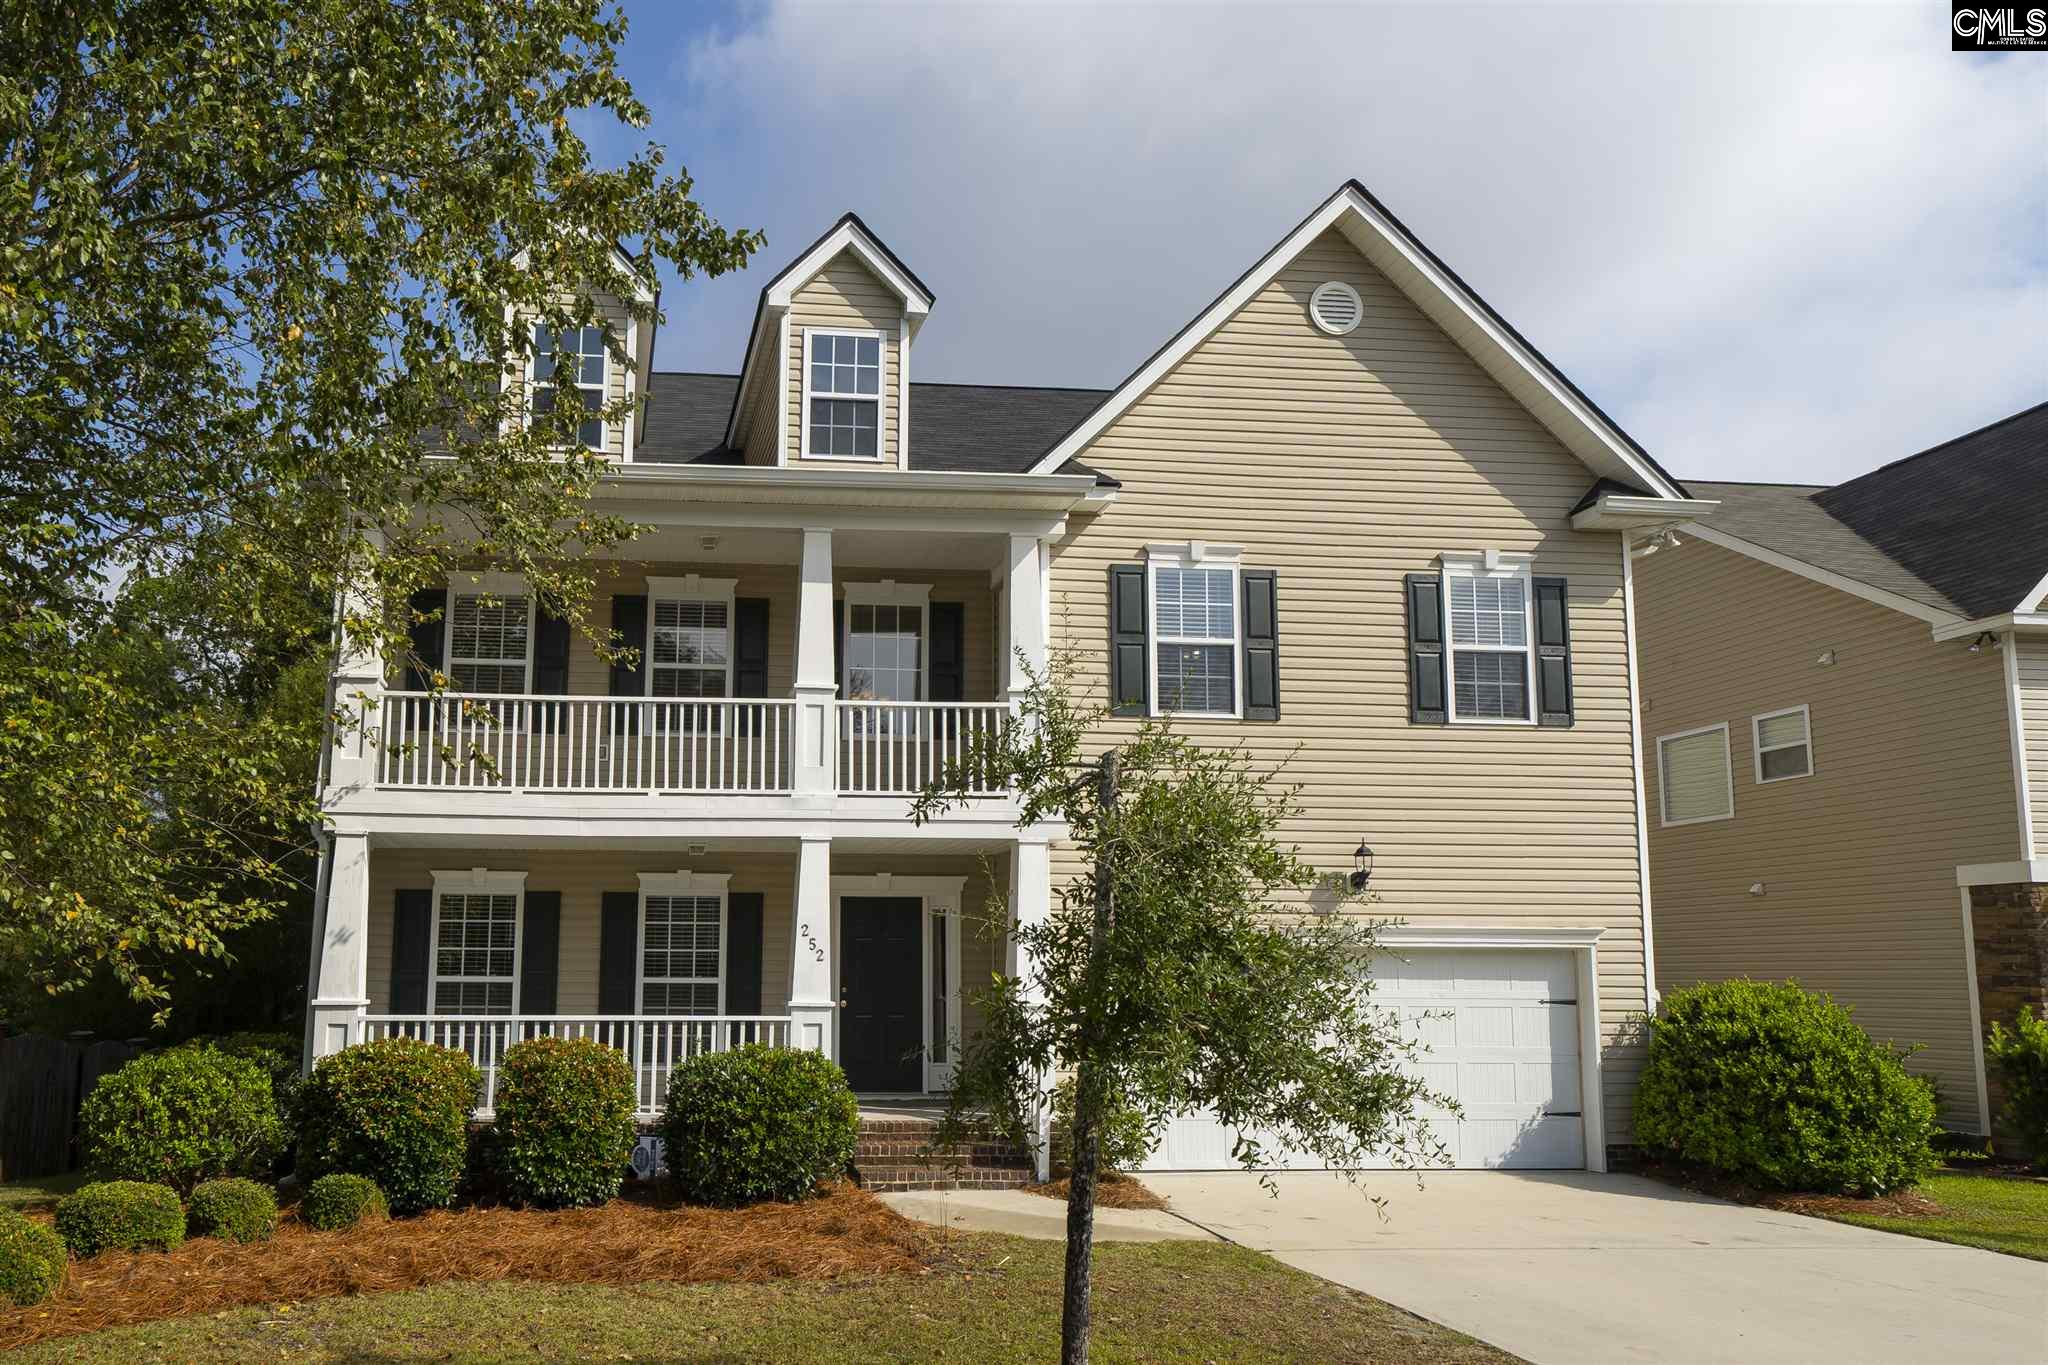 252 Brooksdale Columbia, SC 29229